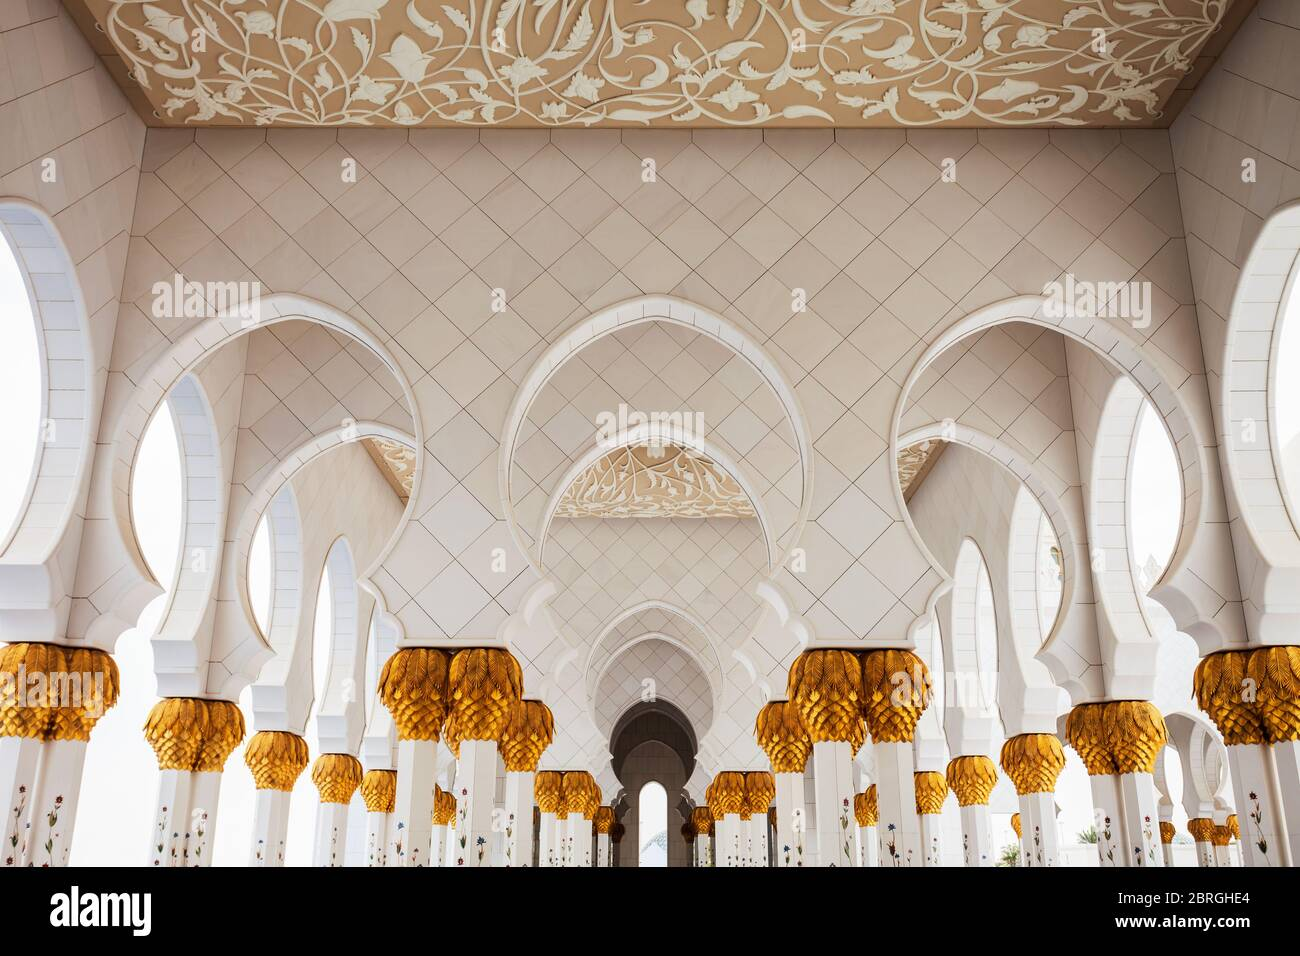 Sheikh Zayed Grand Mosque Interior The Largest Mosque Of Uae Located In Abu Dhabi Stock Photo Alamy